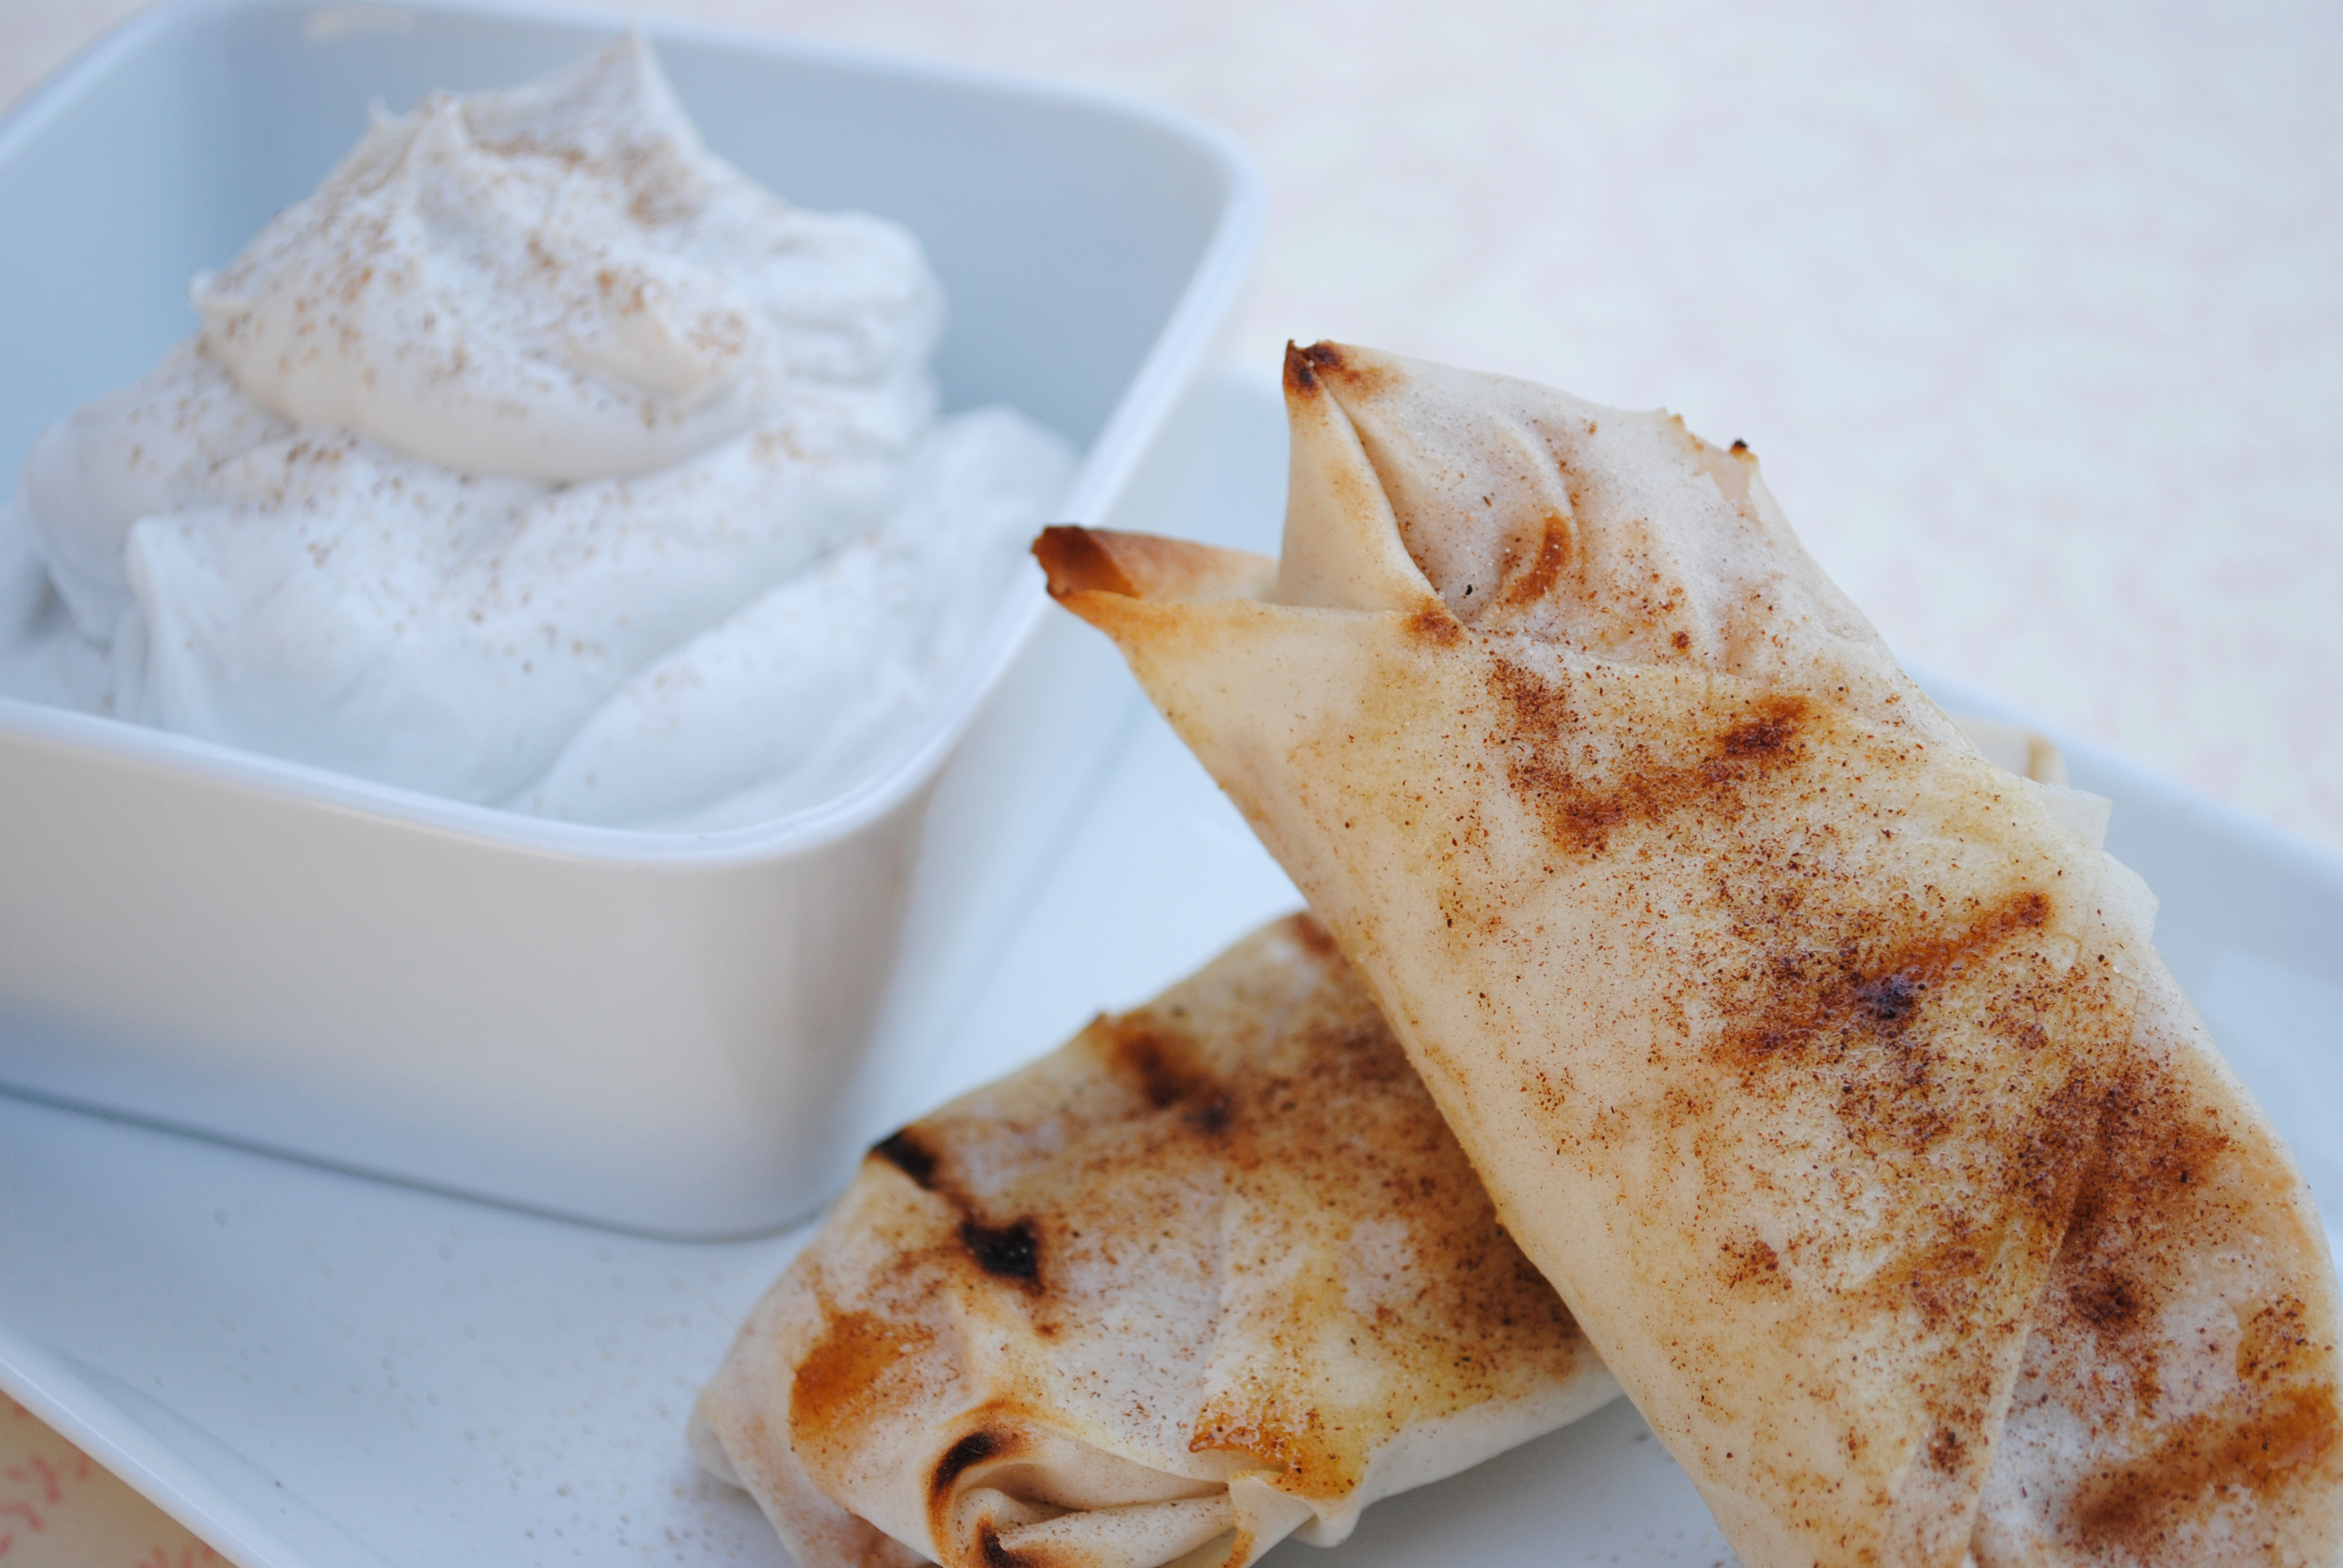 Vegan Grilled Apple Pie with Vanilla-Coconut Whipped Cream